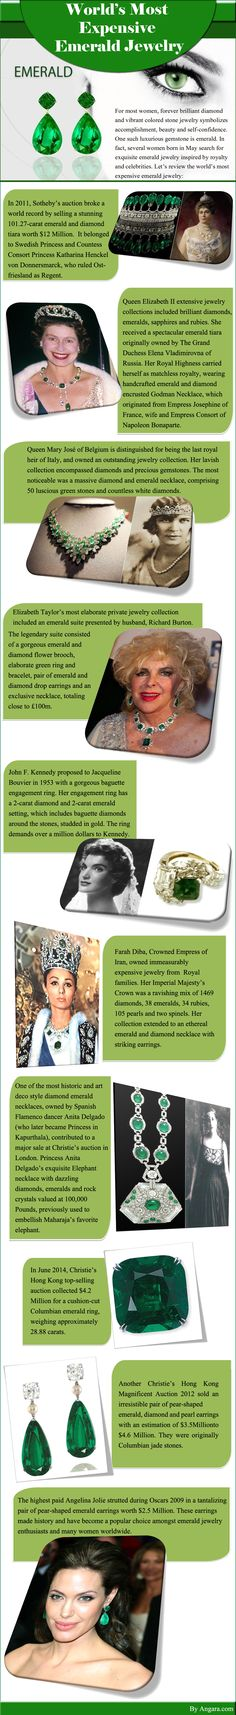 Worlds-Most-Expensive-Emerald-Jewelry